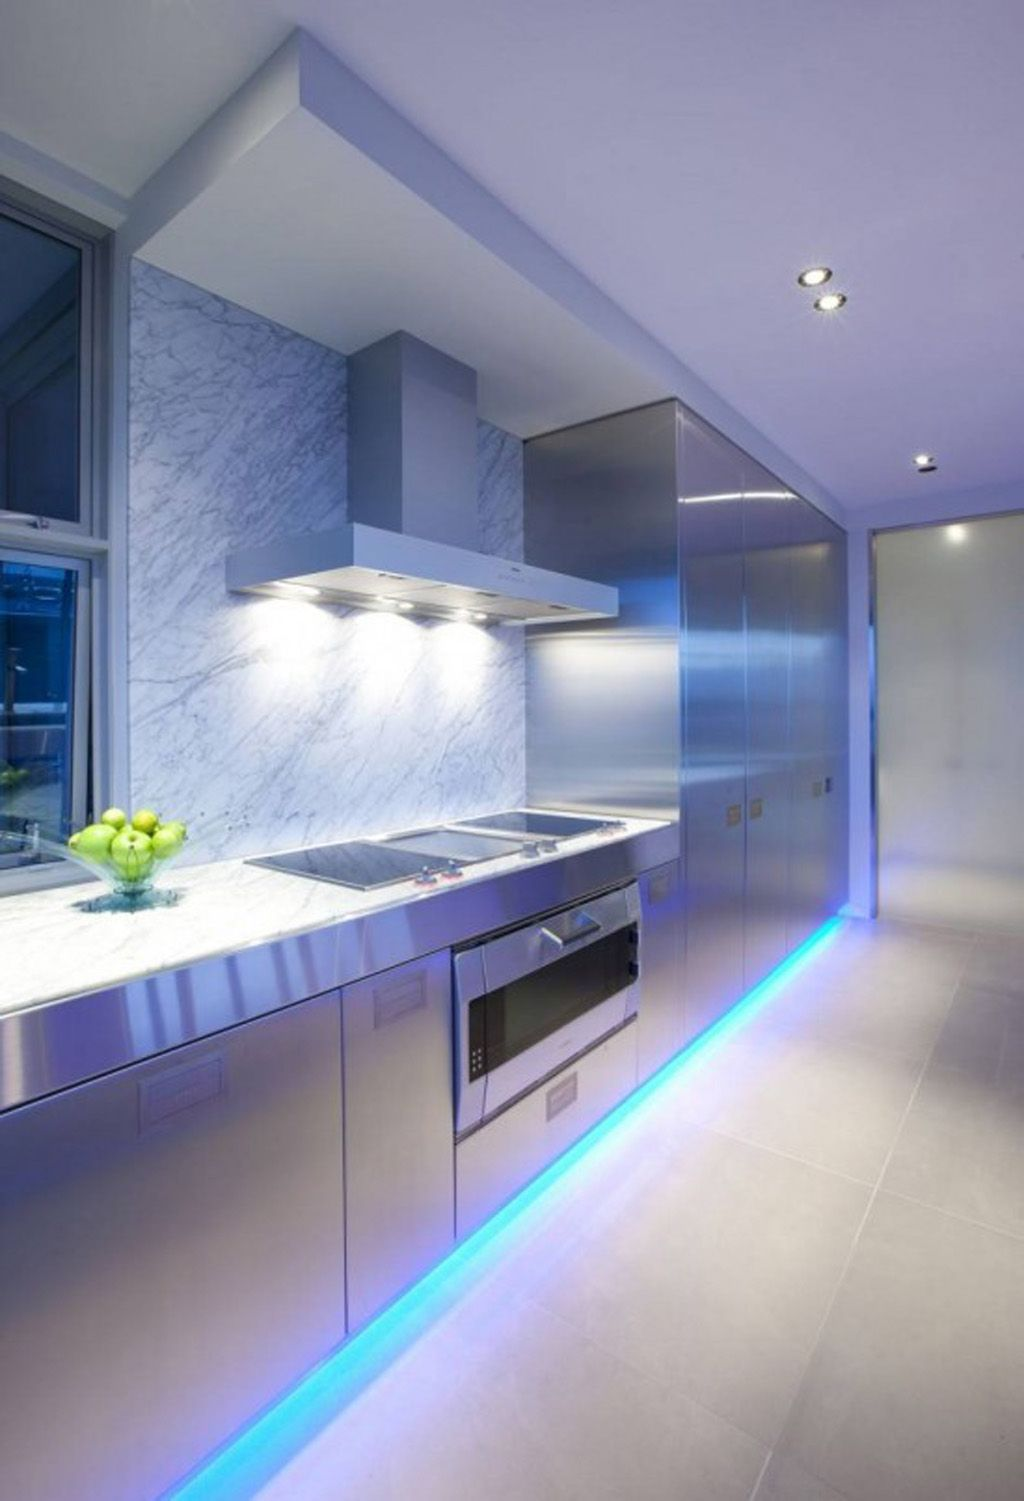 Led Lighting Fixtures Modern Kitchen Interior Decor Iroonie Com